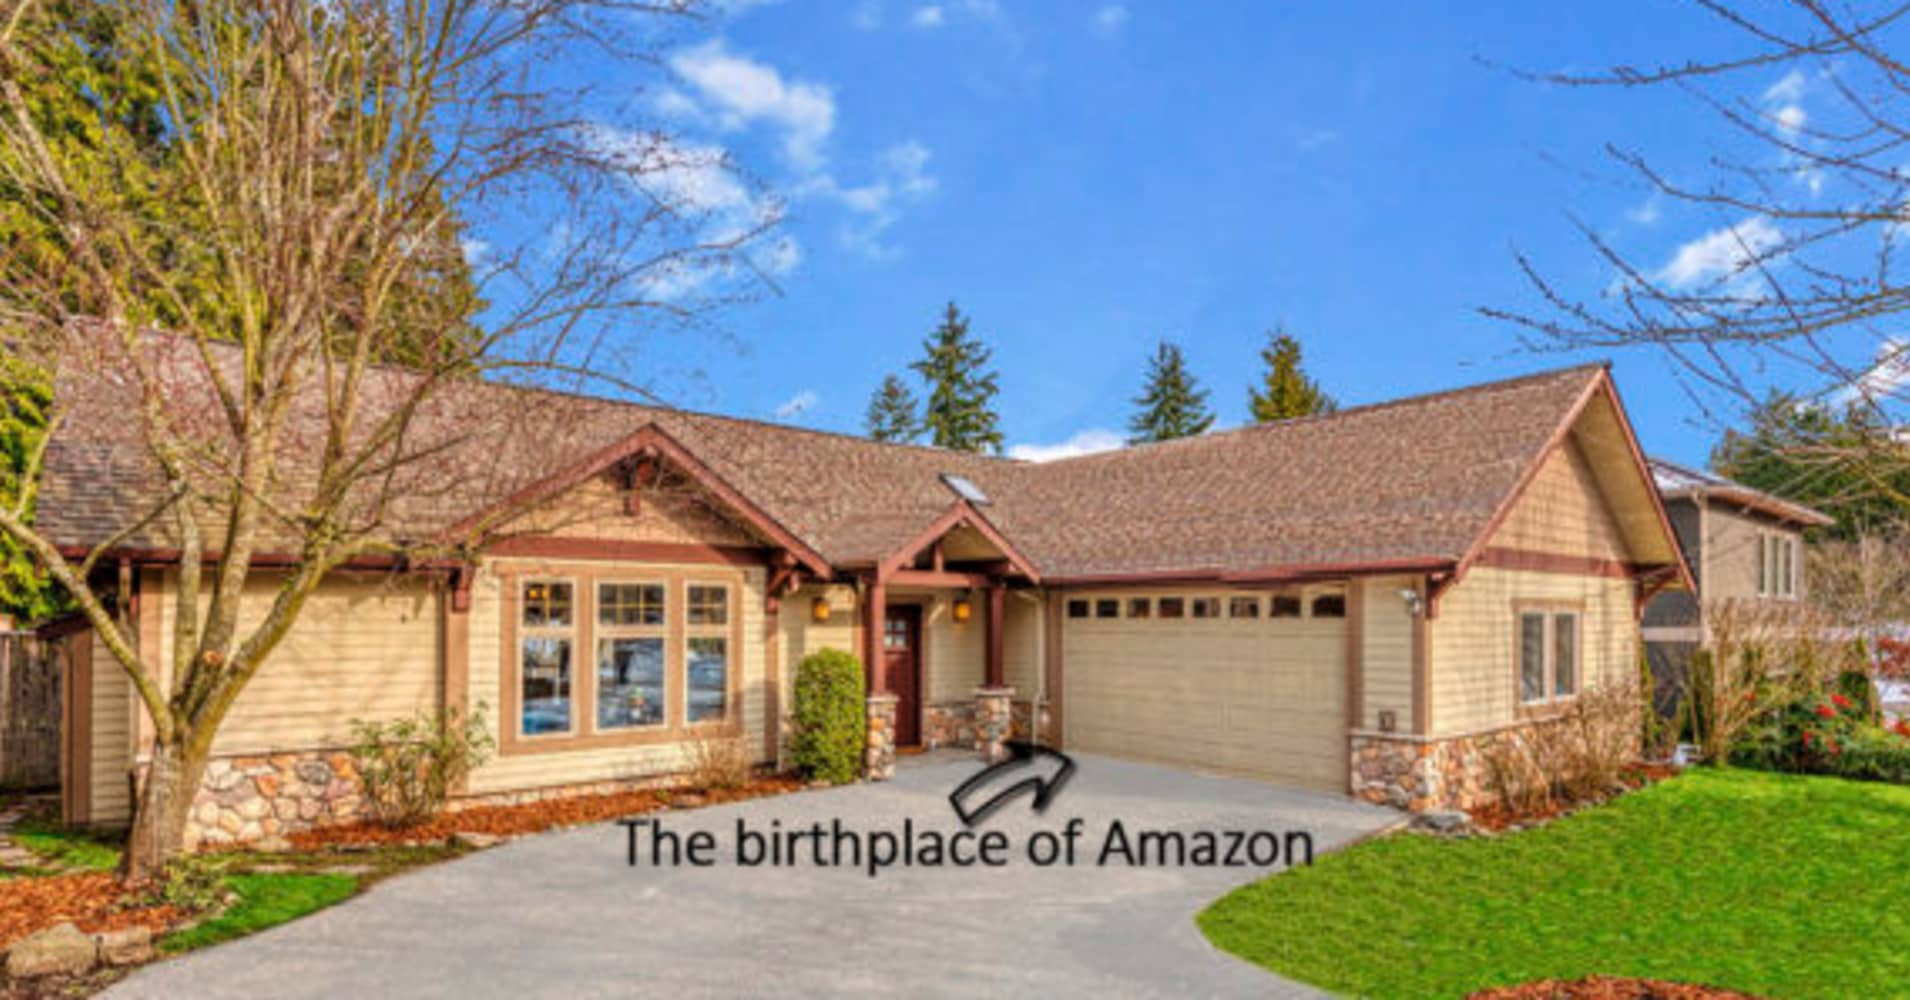 The house where Jeff Bezos founded Amazon is on sale for a bargain price